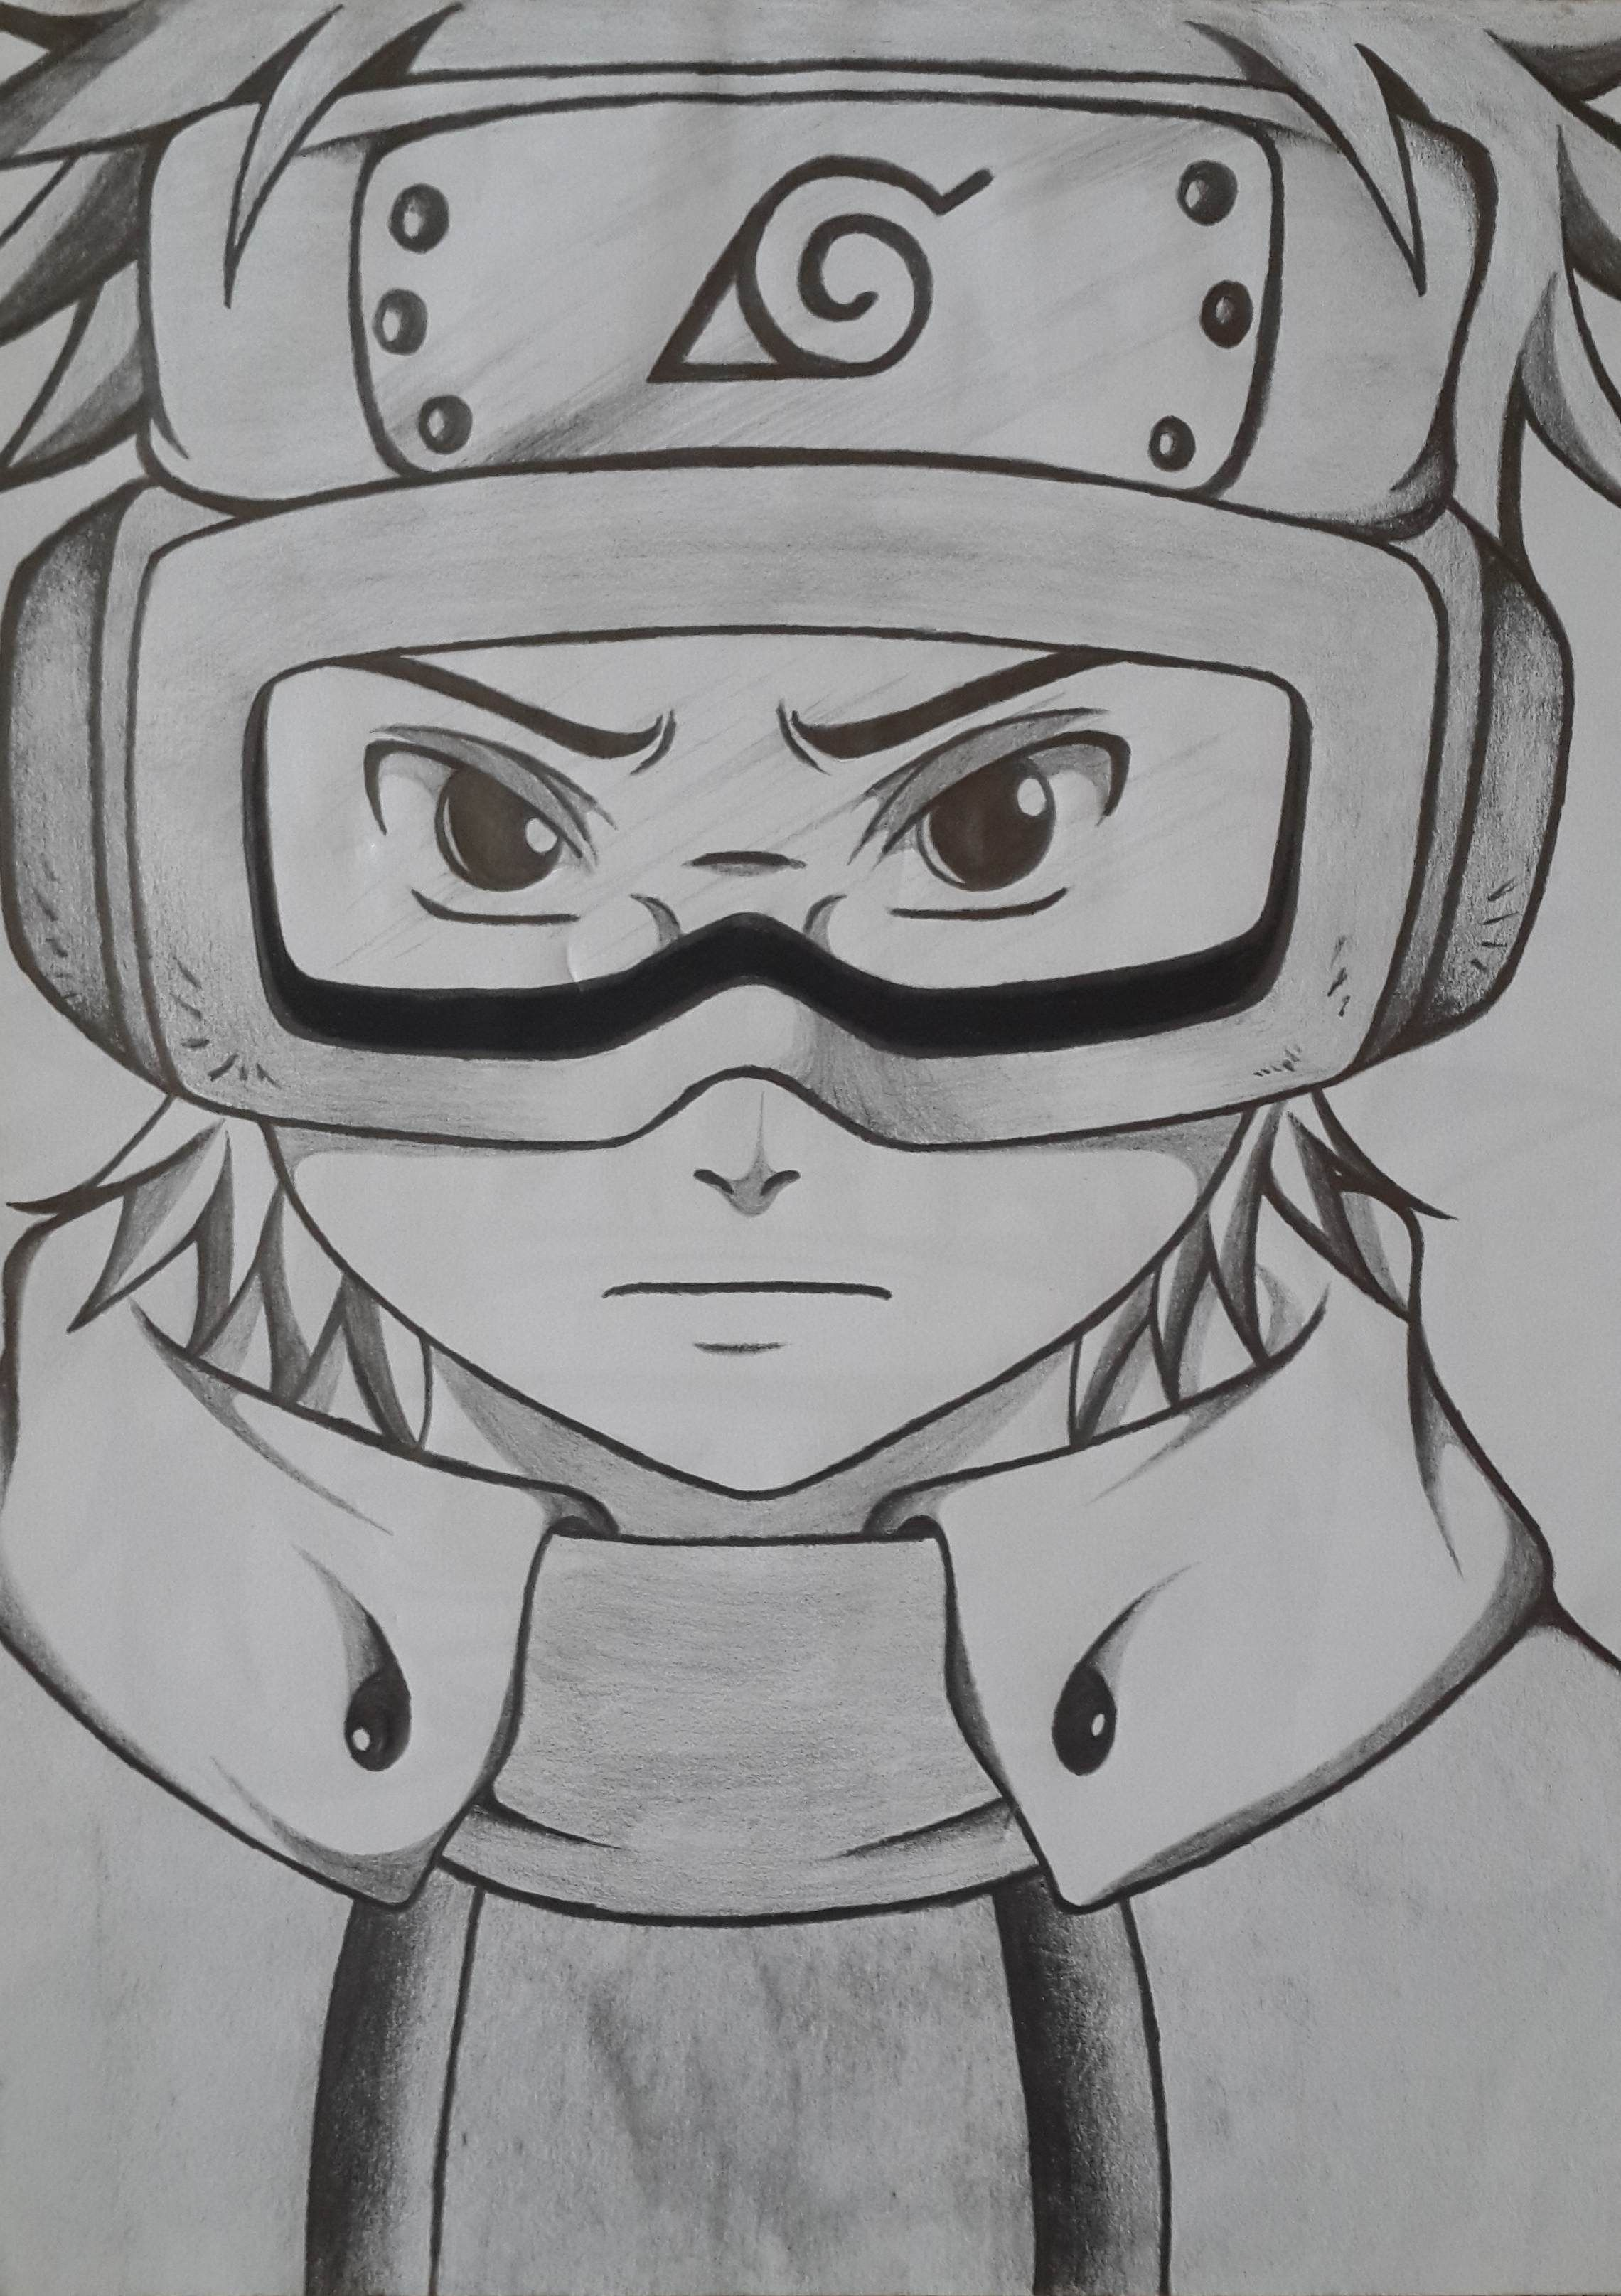 Obito pencil drawing